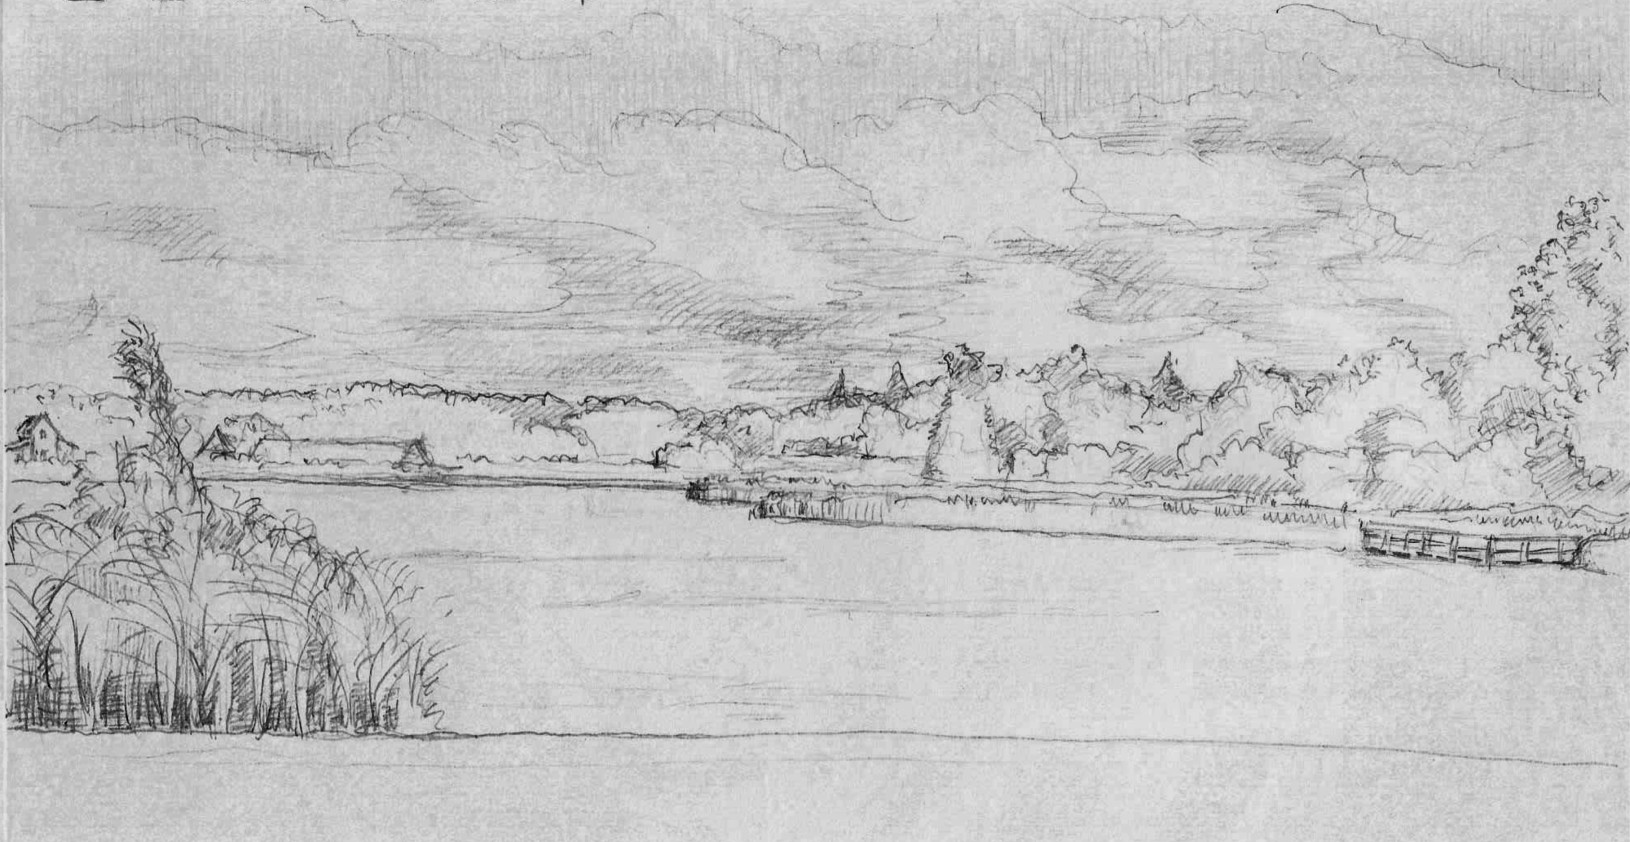 Lake Charlotte - Original pencil drawing